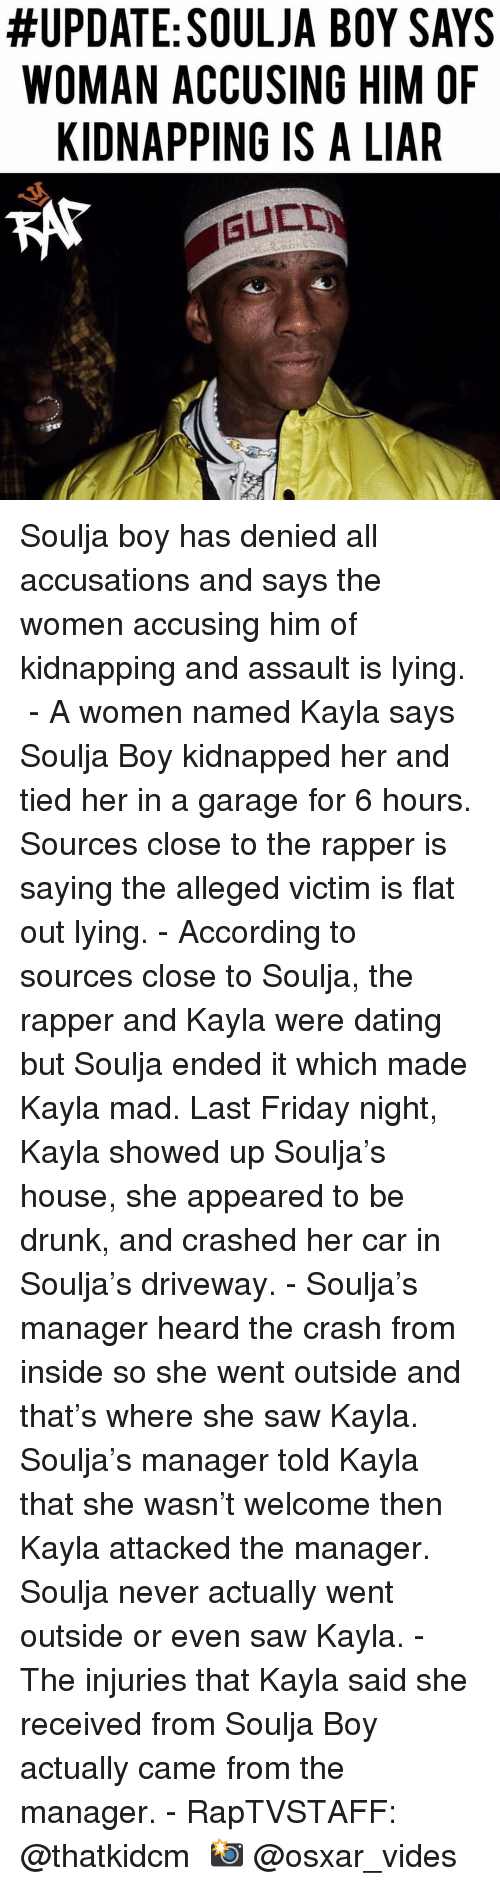 Dating, Drunk, and Friday:  #UPDATE: SOULJA BOY SAYS  WOMAN ACCUSING HIM OF  KIDNAPPING IS A LIAR Soulja boy has denied all accusations and says the women accusing him of kidnapping and assault is lying. ⁣ -⁣ A women named Kayla says Soulja Boy kidnapped her and tied her in a garage for 6 hours. Sources close to the rapper is saying the alleged victim is flat out lying.⁣ -⁣ According to sources close to Soulja, the rapper and Kayla were dating but Soulja ended it which made Kayla mad. Last Friday night, Kayla showed up Soulja's house, she appeared to be drunk, and crashed her car in Soulja's driveway.⁣ -⁣ Soulja's manager heard the crash from inside so she went outside and that's where she saw Kayla. Soulja's manager told Kayla that she wasn't welcome then Kayla attacked the manager. Soulja never actually went outside or even saw Kayla.⁣ -⁣ The injuries that Kayla said she received from Soulja Boy actually came from the manager.⁣ -⁣ RapTVSTAFF: @thatkidcm⁣ 📸 @osxar_vides⁣